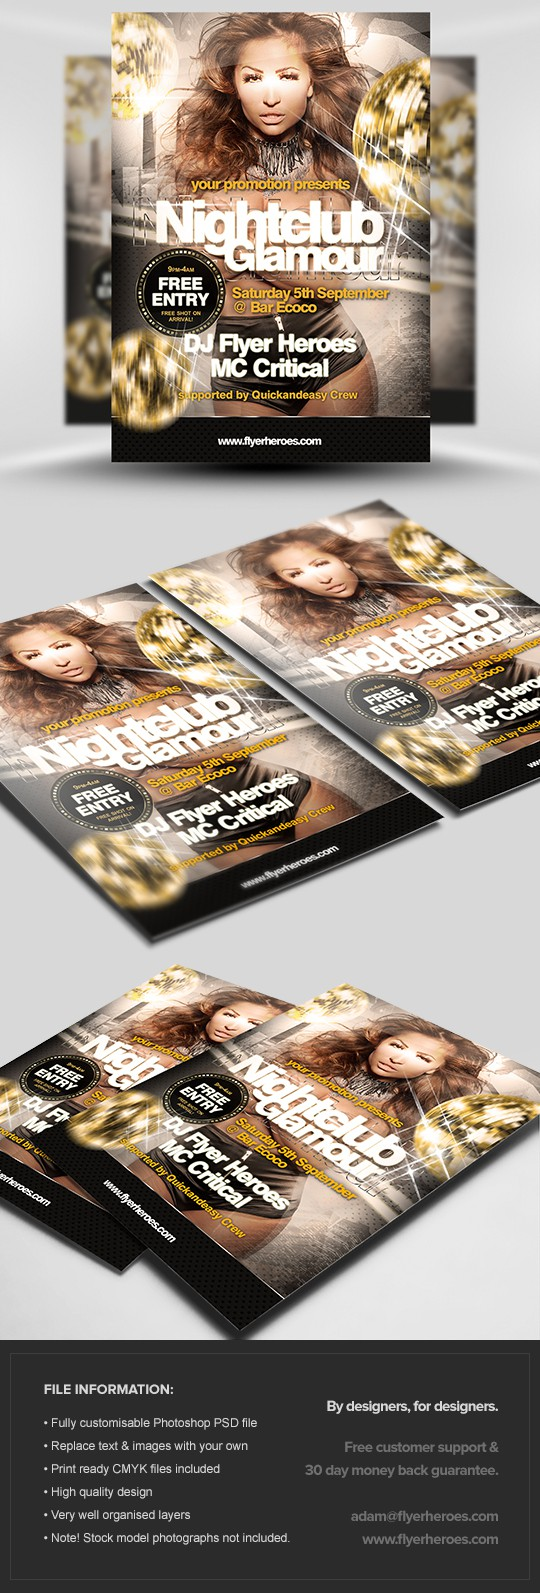 Nightclub Glamour Flyer Template